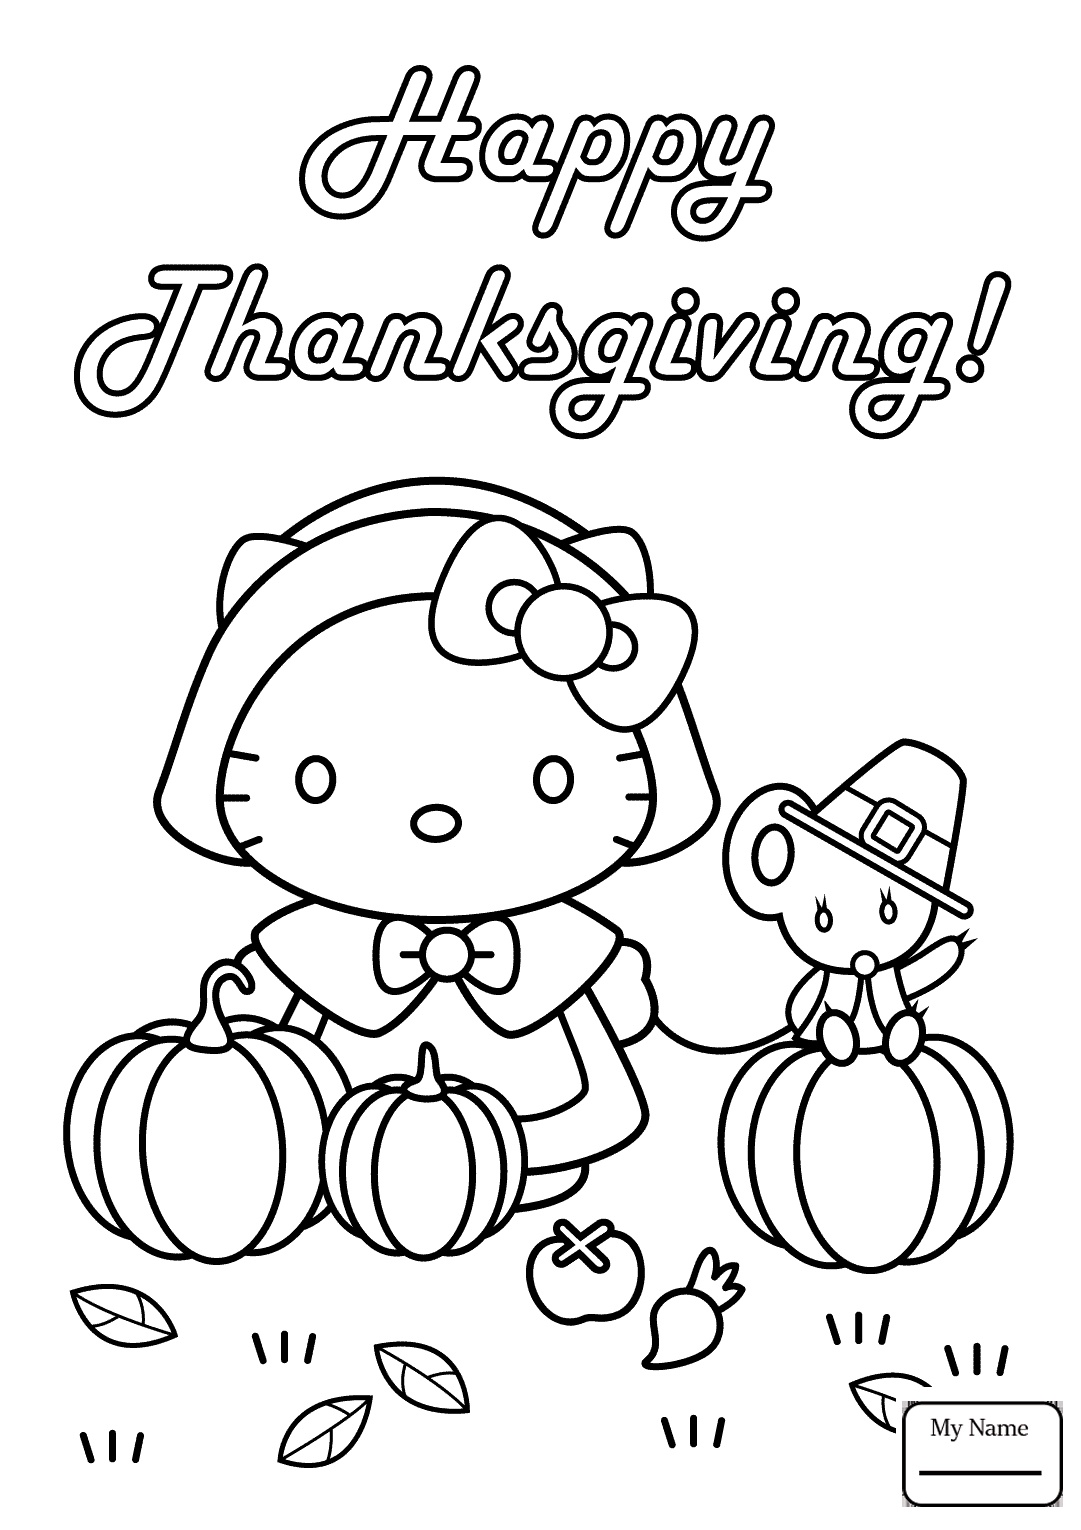 1081x1530 Luxury Hello Kitty Hello Kitty Angel Cartoons Coloring Pages